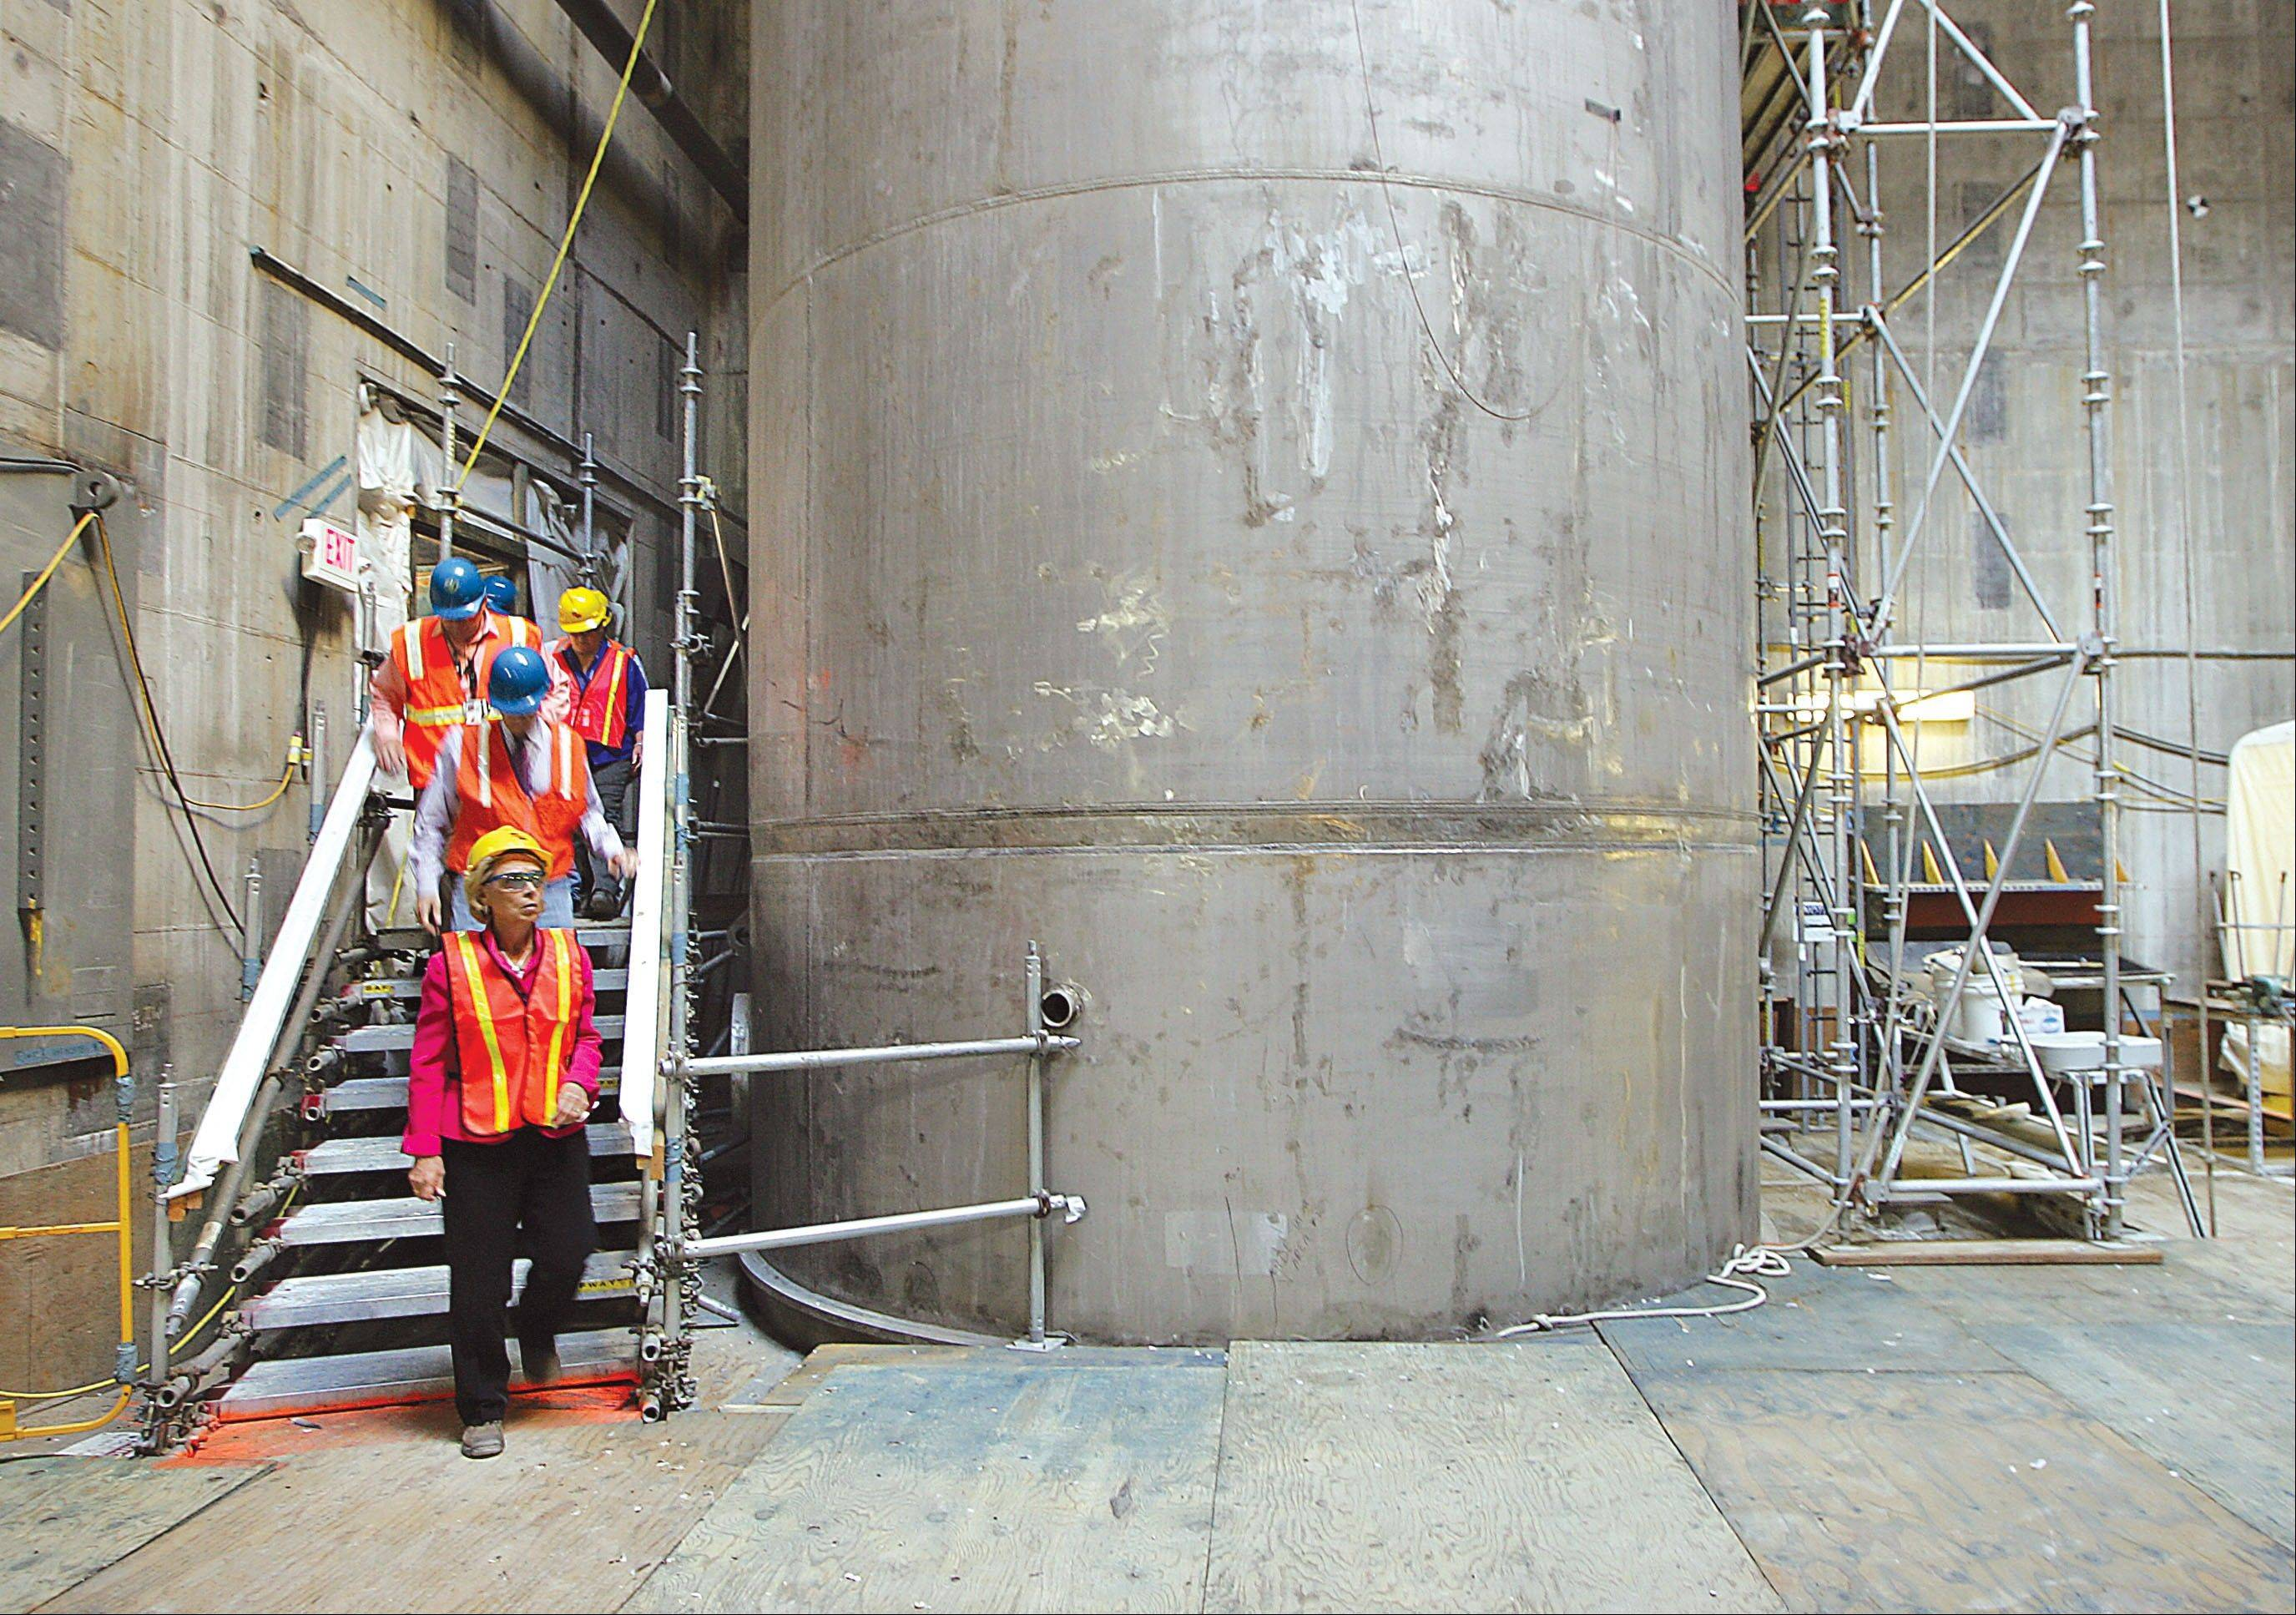 Associated Press/Sept. 18, 2012 Then-Gov. Chris Gregoire makes her way down a set of stairs at the Hanford Vitrification Plant in Richland, Wash. Six underground radioactive waste tanks at the nation's most contaminated nuclear site are leaking, Gov. Jay Inslee said Friday.